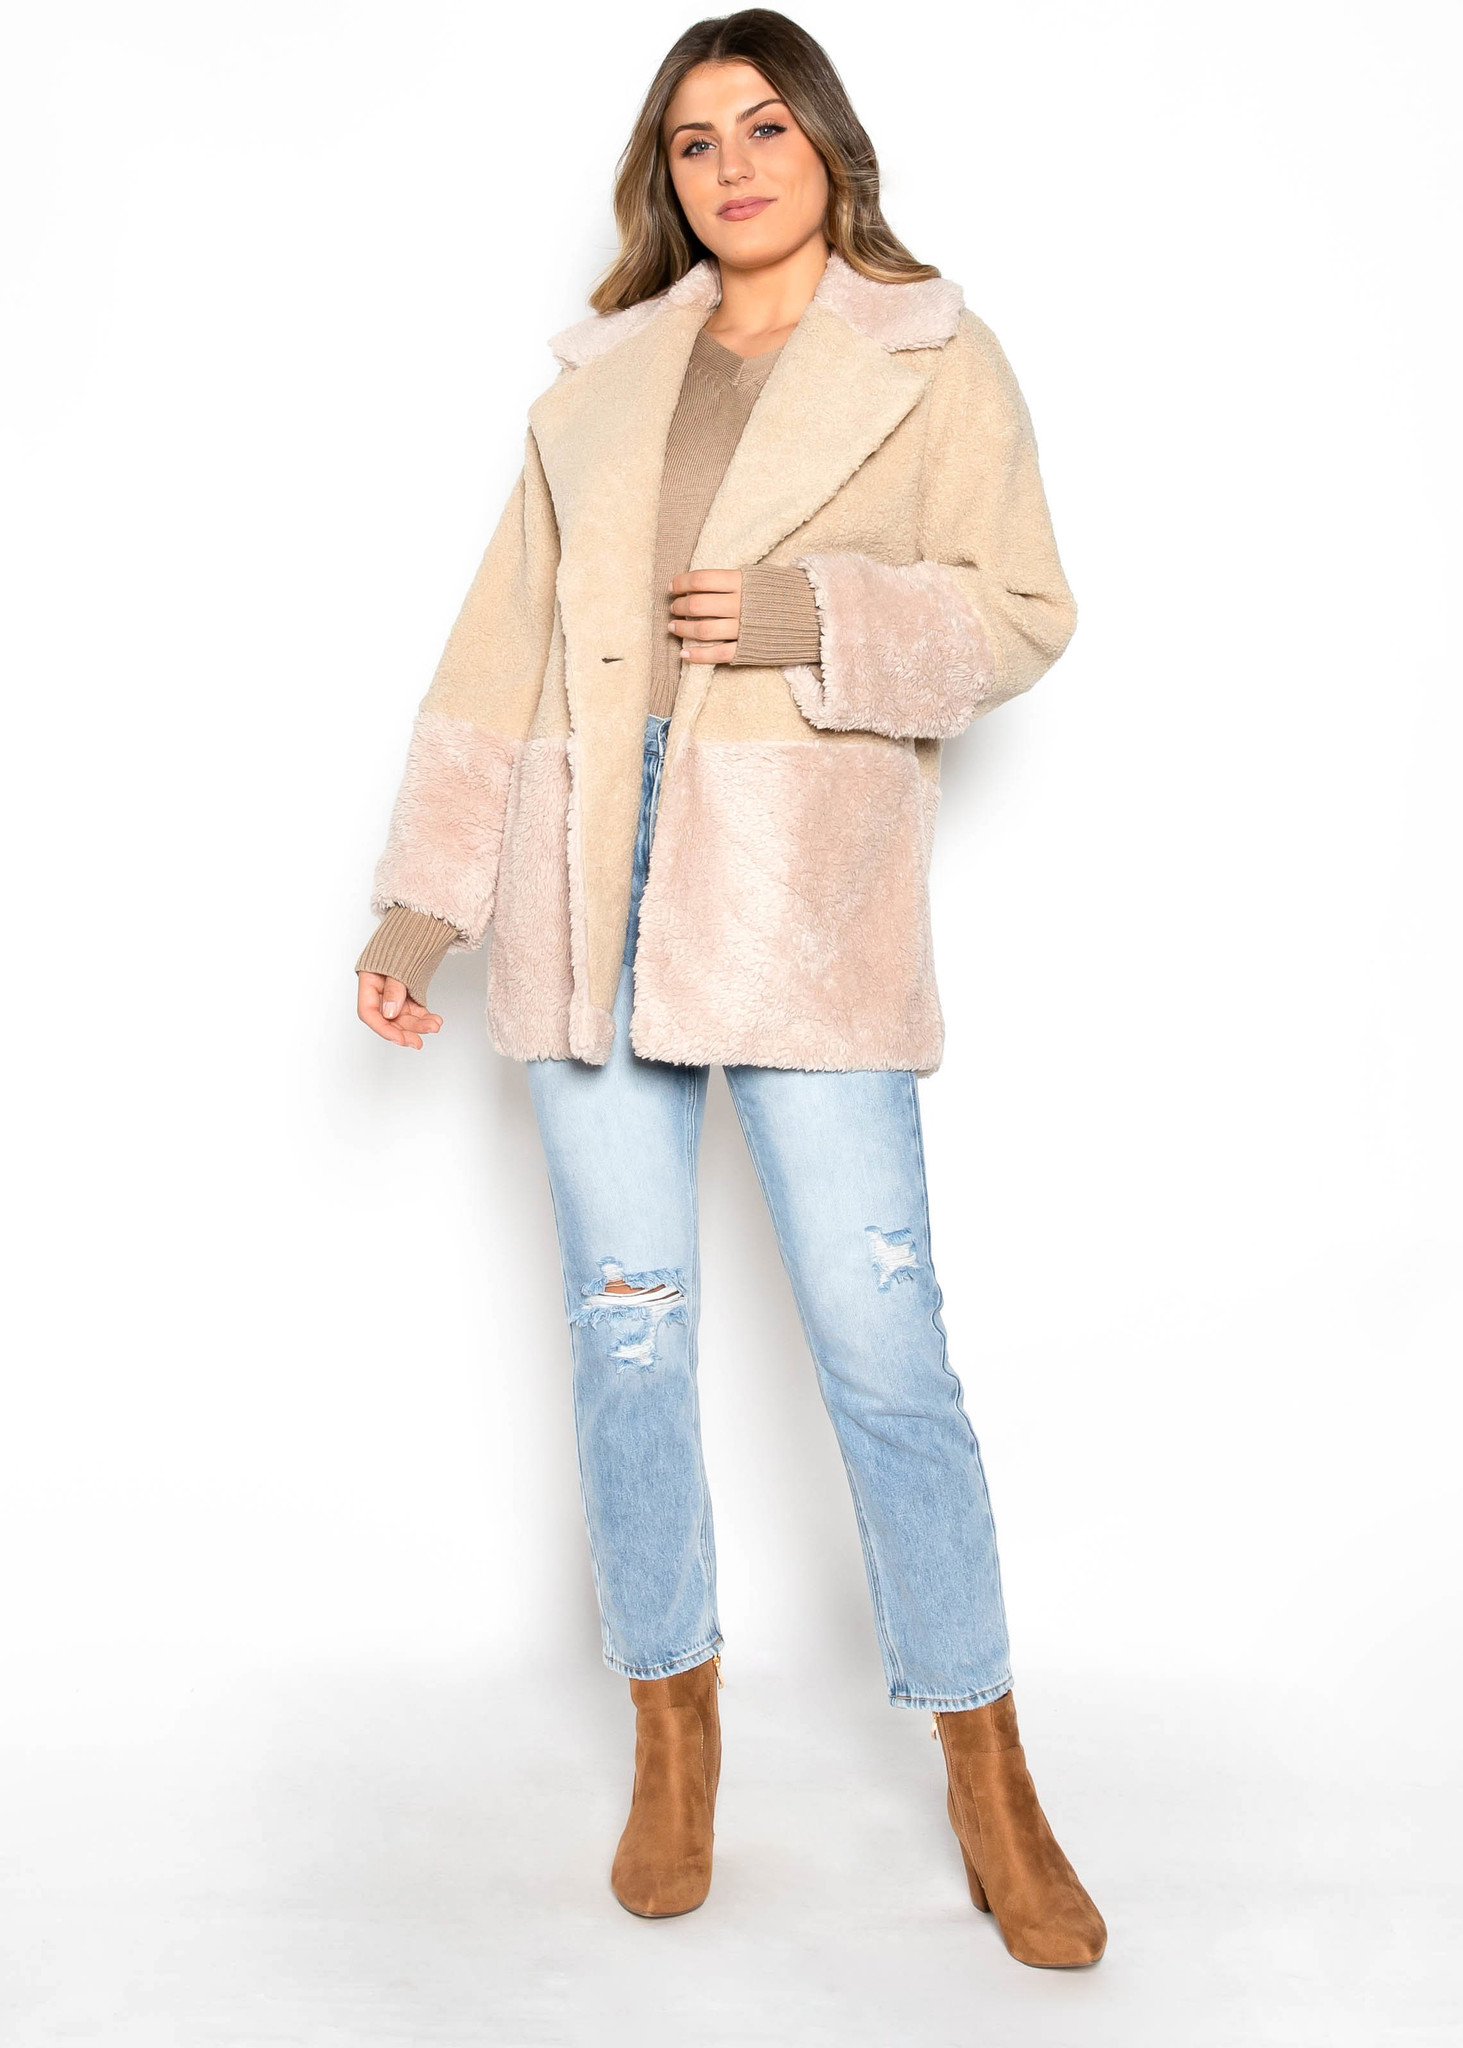 HELLO DARLING TWO TONE COAT